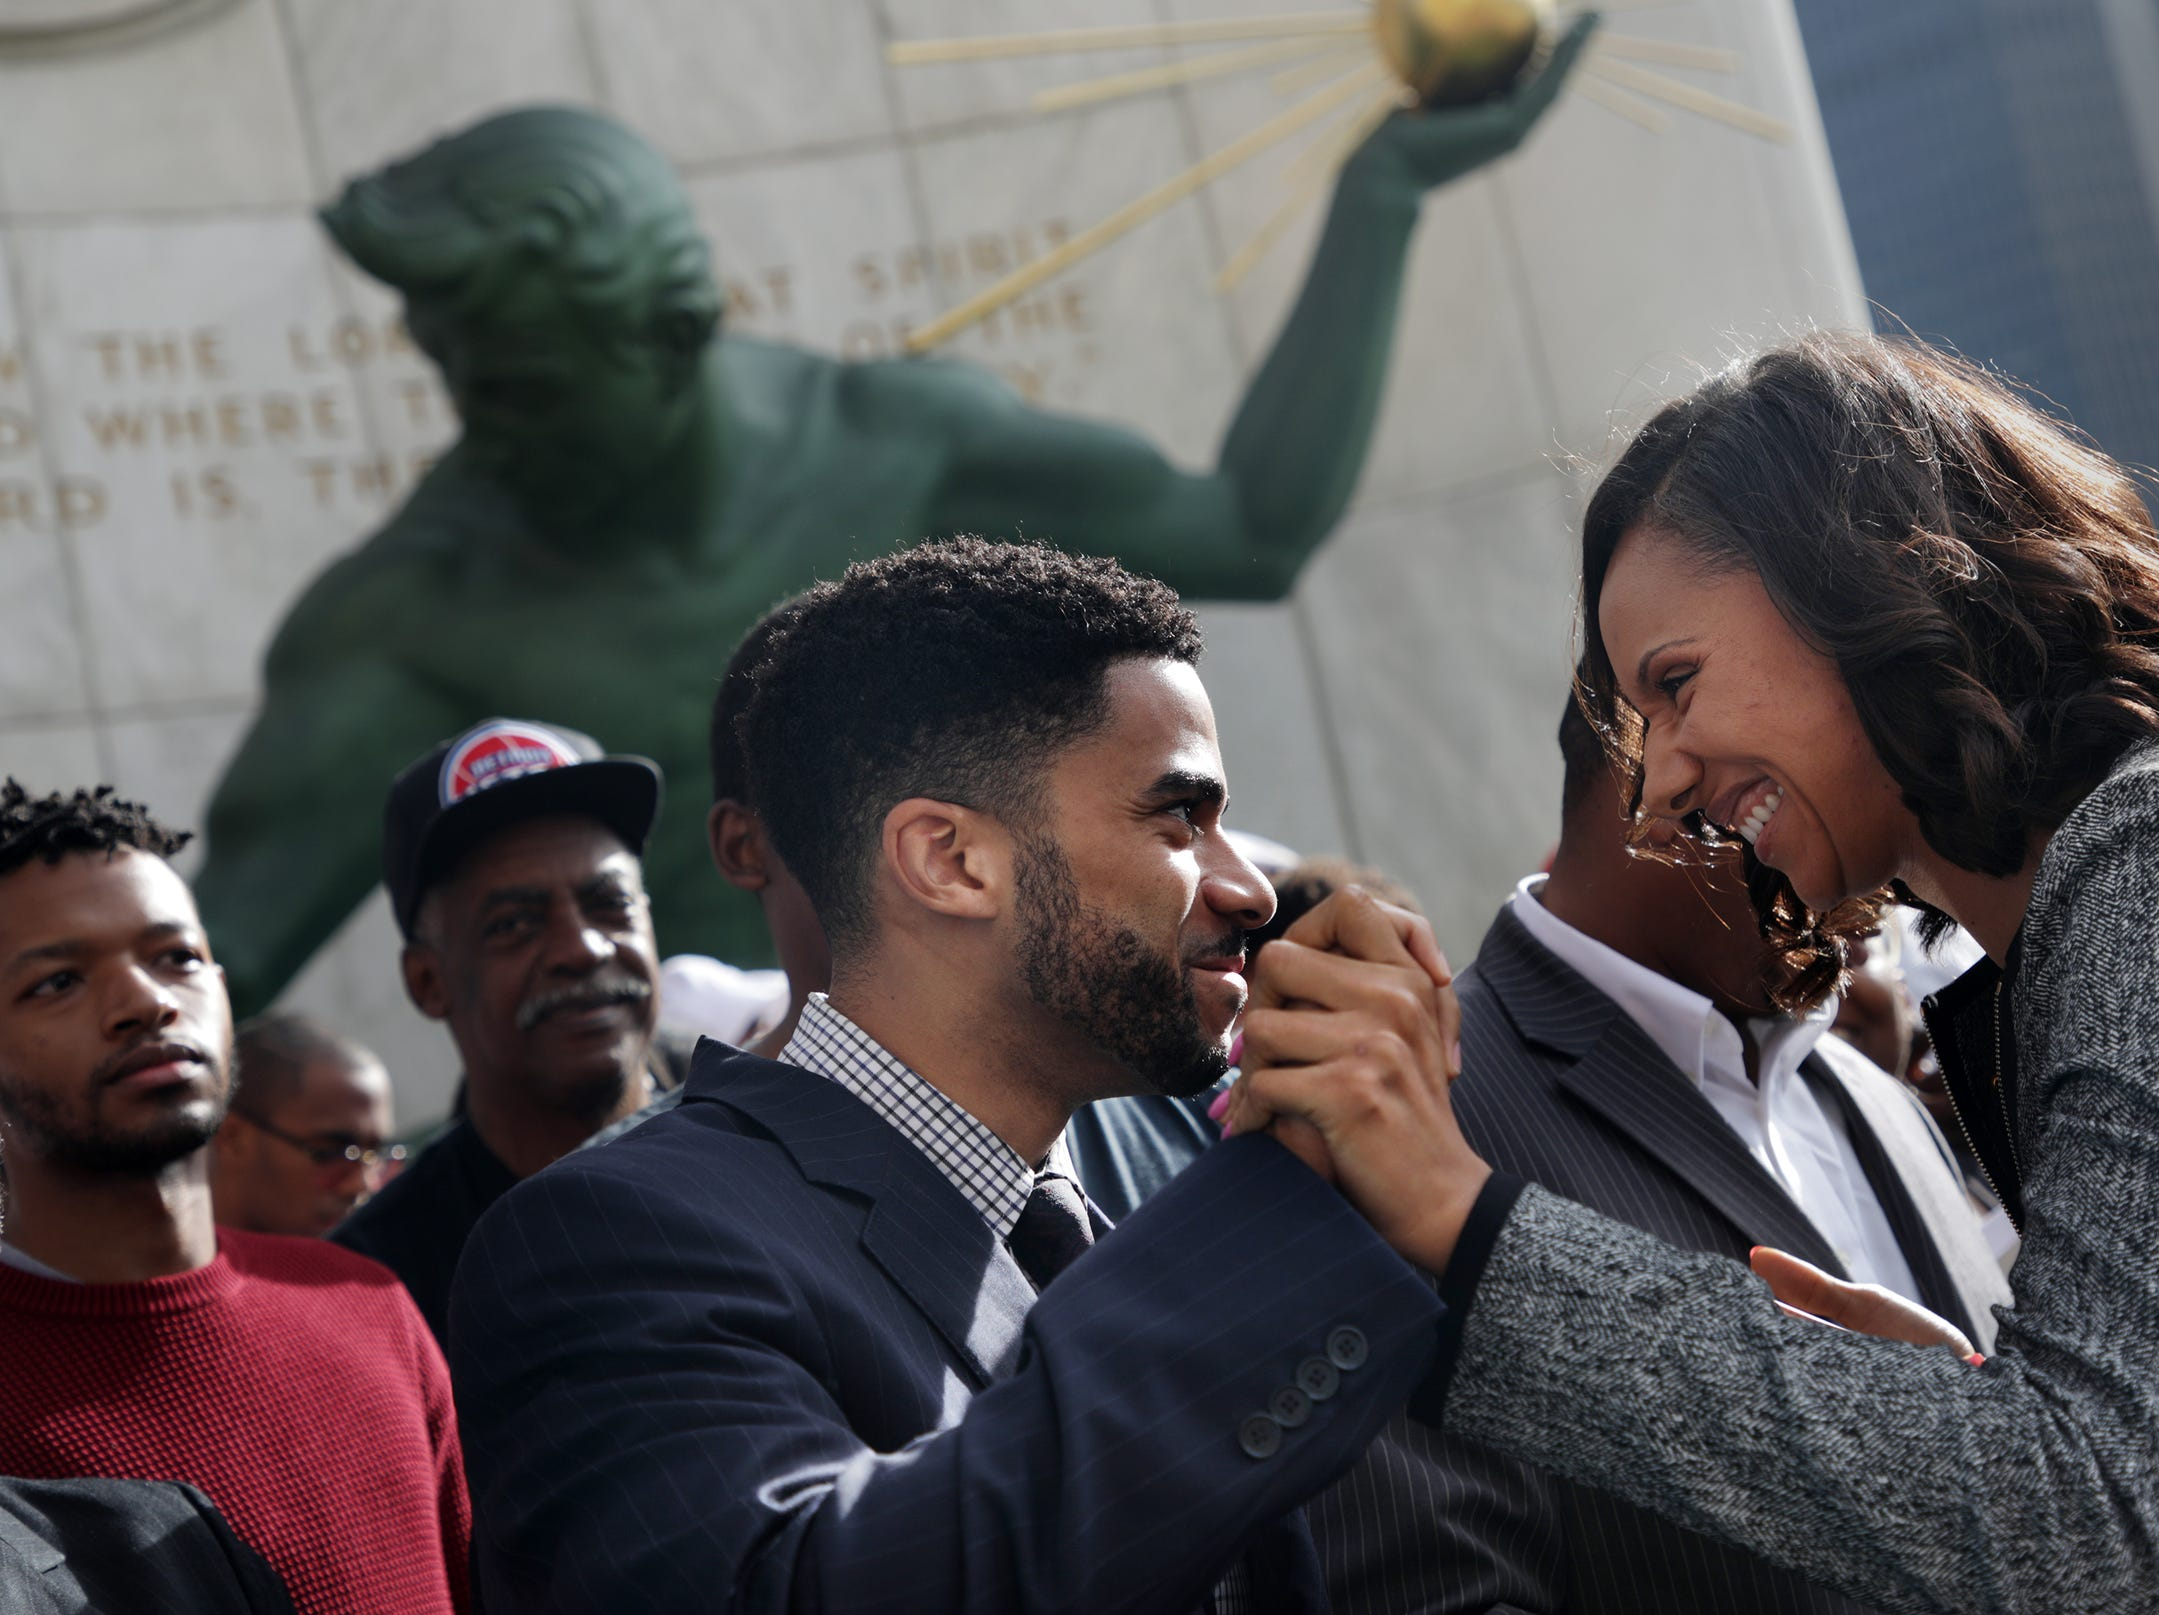 Detroit City Council President Pro Tempore Mary Sheffield, right and Damion Ellis high five during during the introduction of a package of legislations called the People's Bills on Monday, September 17, 2018 in front of the Coleman A. Young Municipal Center in Detroit.